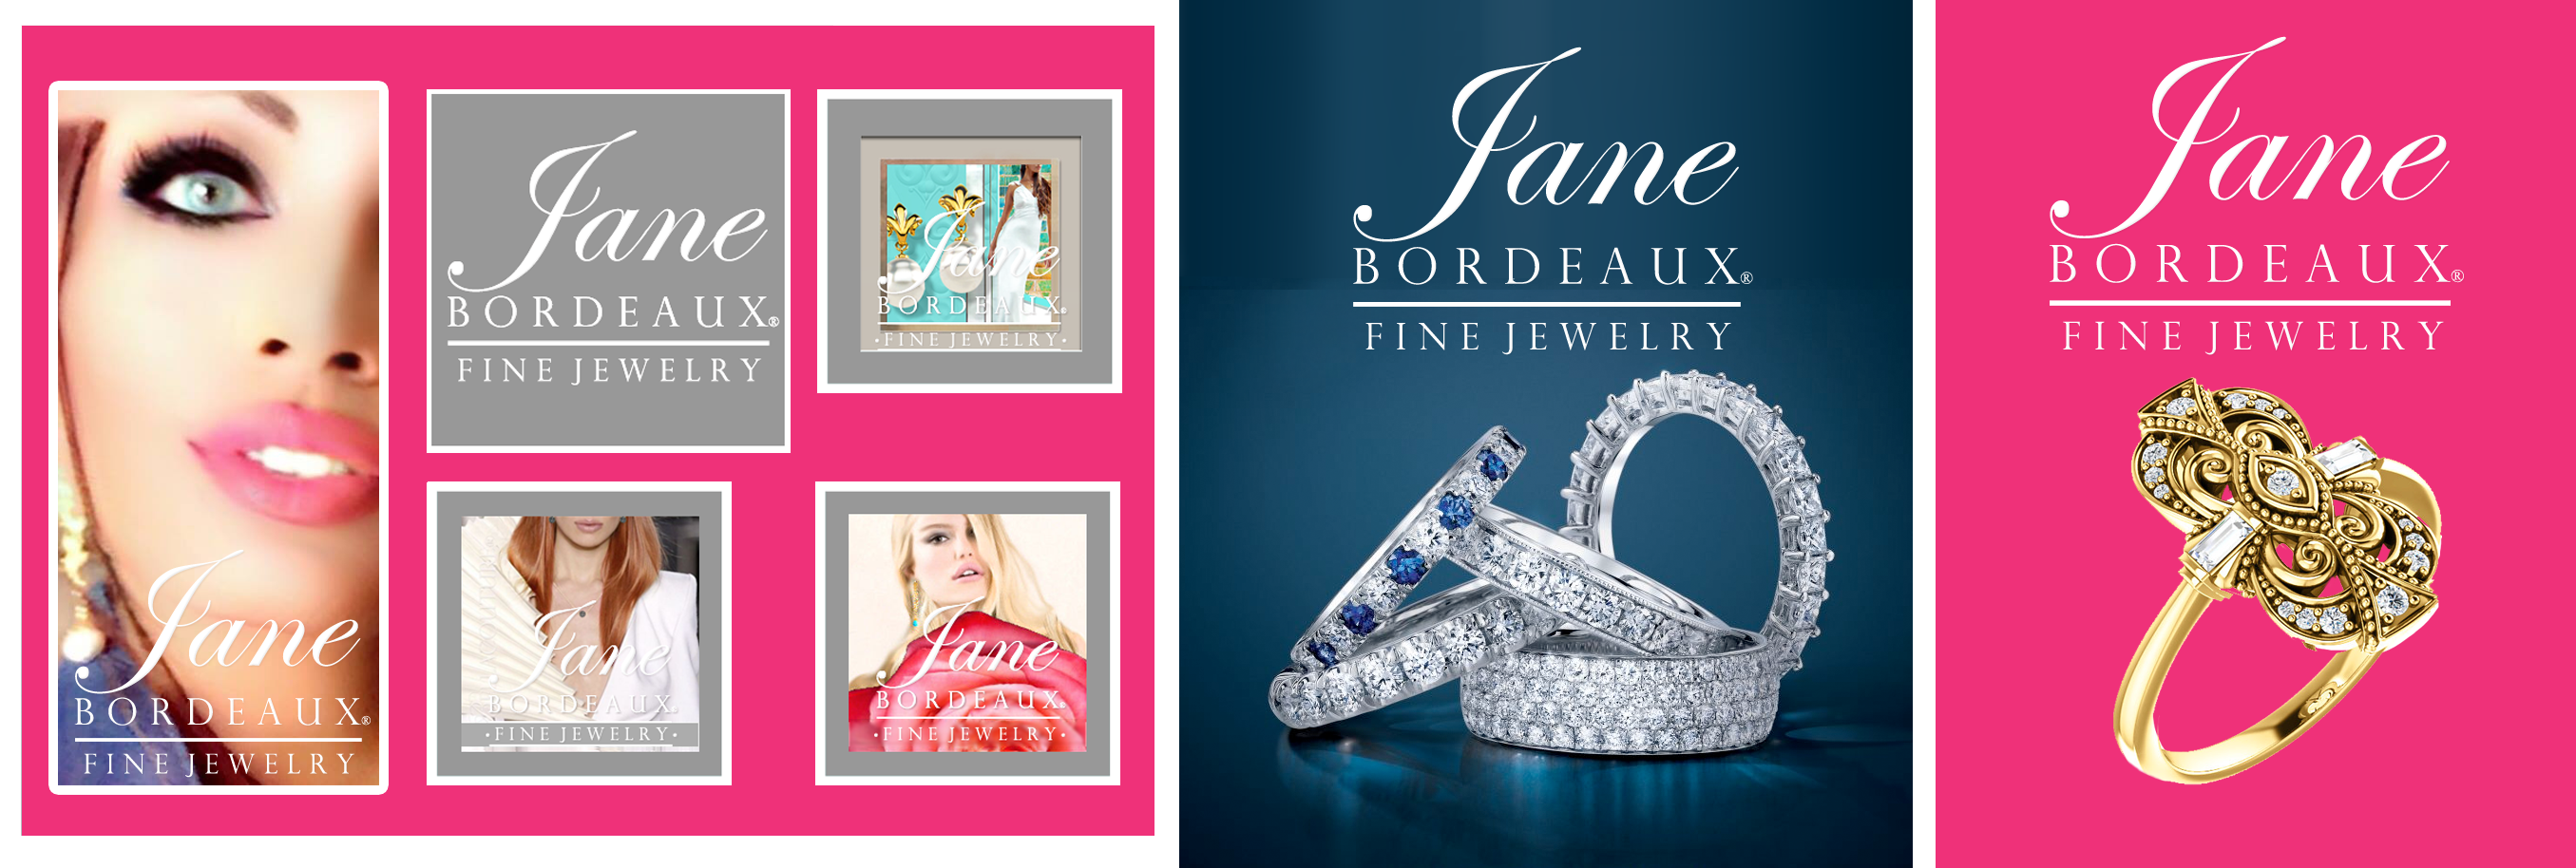 jane-bordeaux-iinew-banner-the-haus-of-couture-pink-carousel-smaller-images-d-fine-jewelry-bella-couture.png